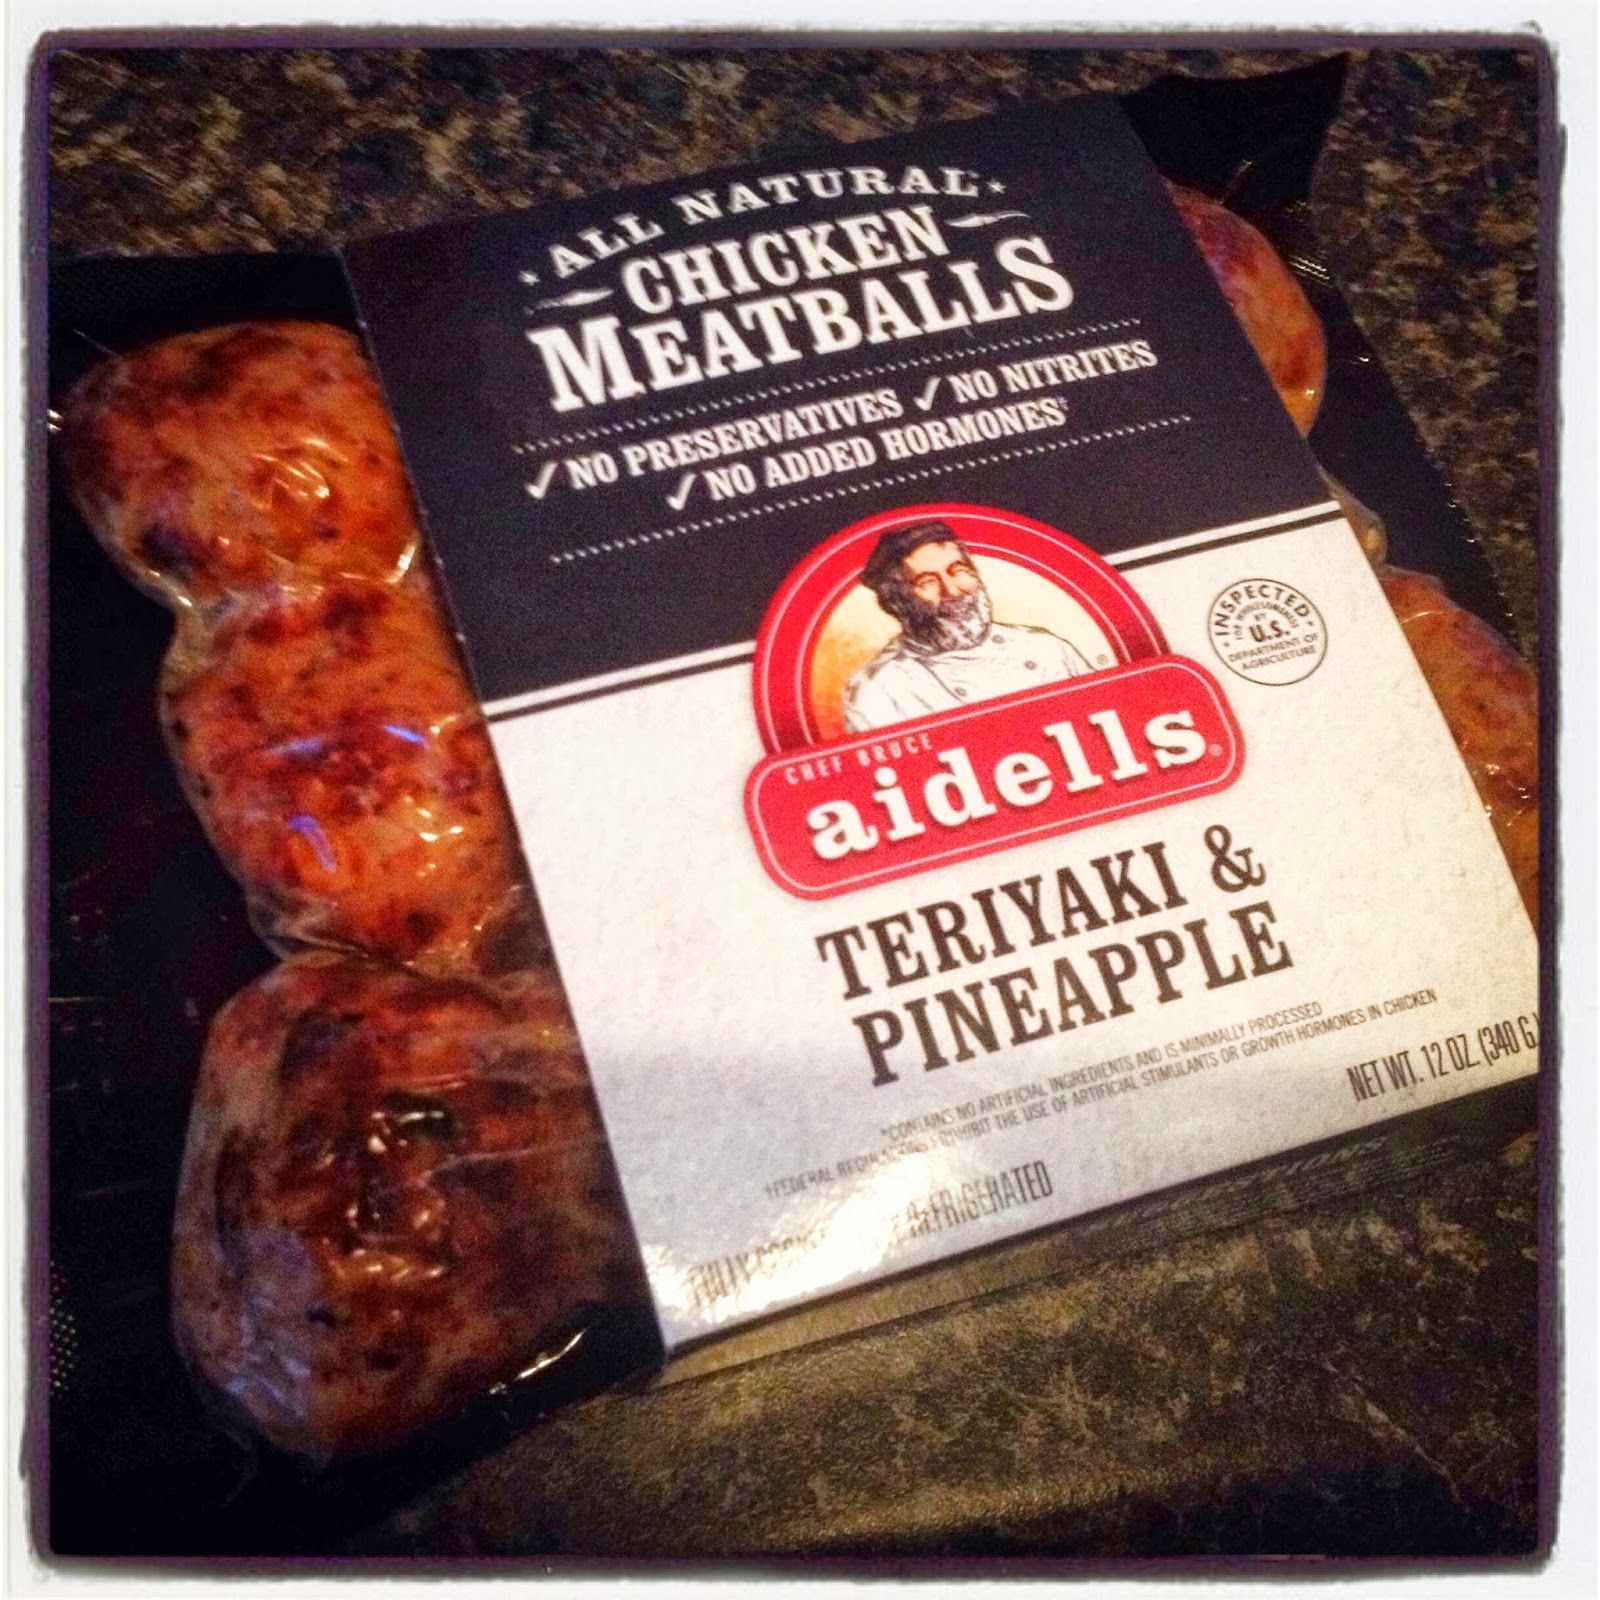 At Aidells, our sausages, meatballs, and burgers bring a bit of adventure to